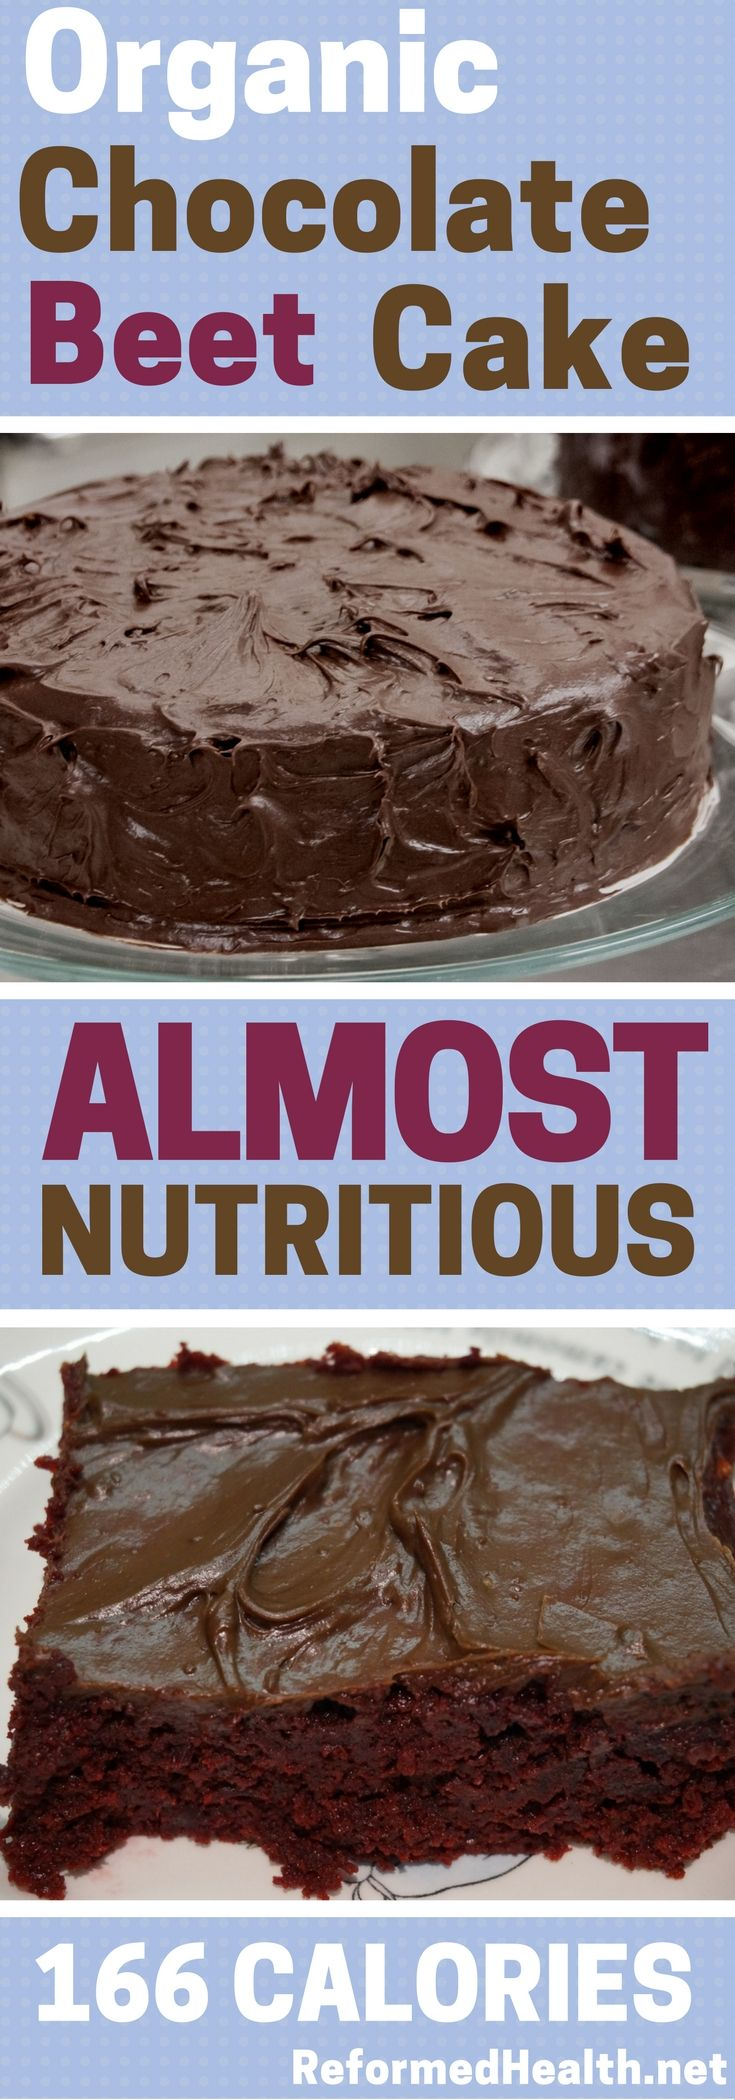 Sometimes you just need chocolate cake. This recipe is definitely delicious -- with all the pleasure of chocolate cake -- but with a nutritious spin: organic and with added beets. Recipe has cost/calorie analysis.